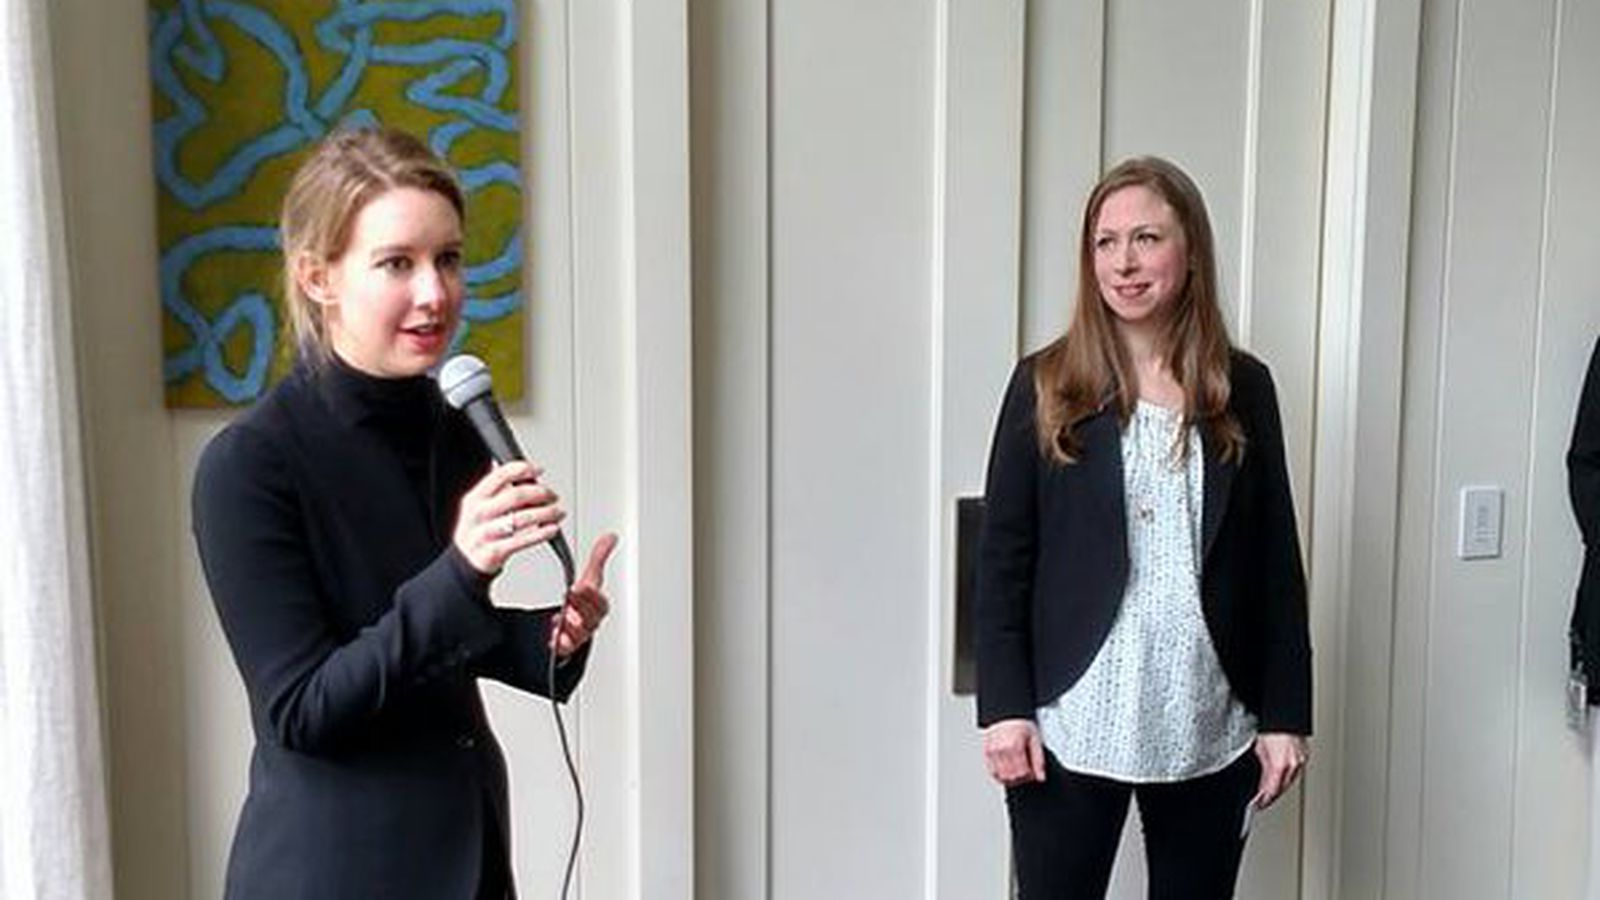 Here's a picture of Theranos CEO Elizabeth Holmes and ...